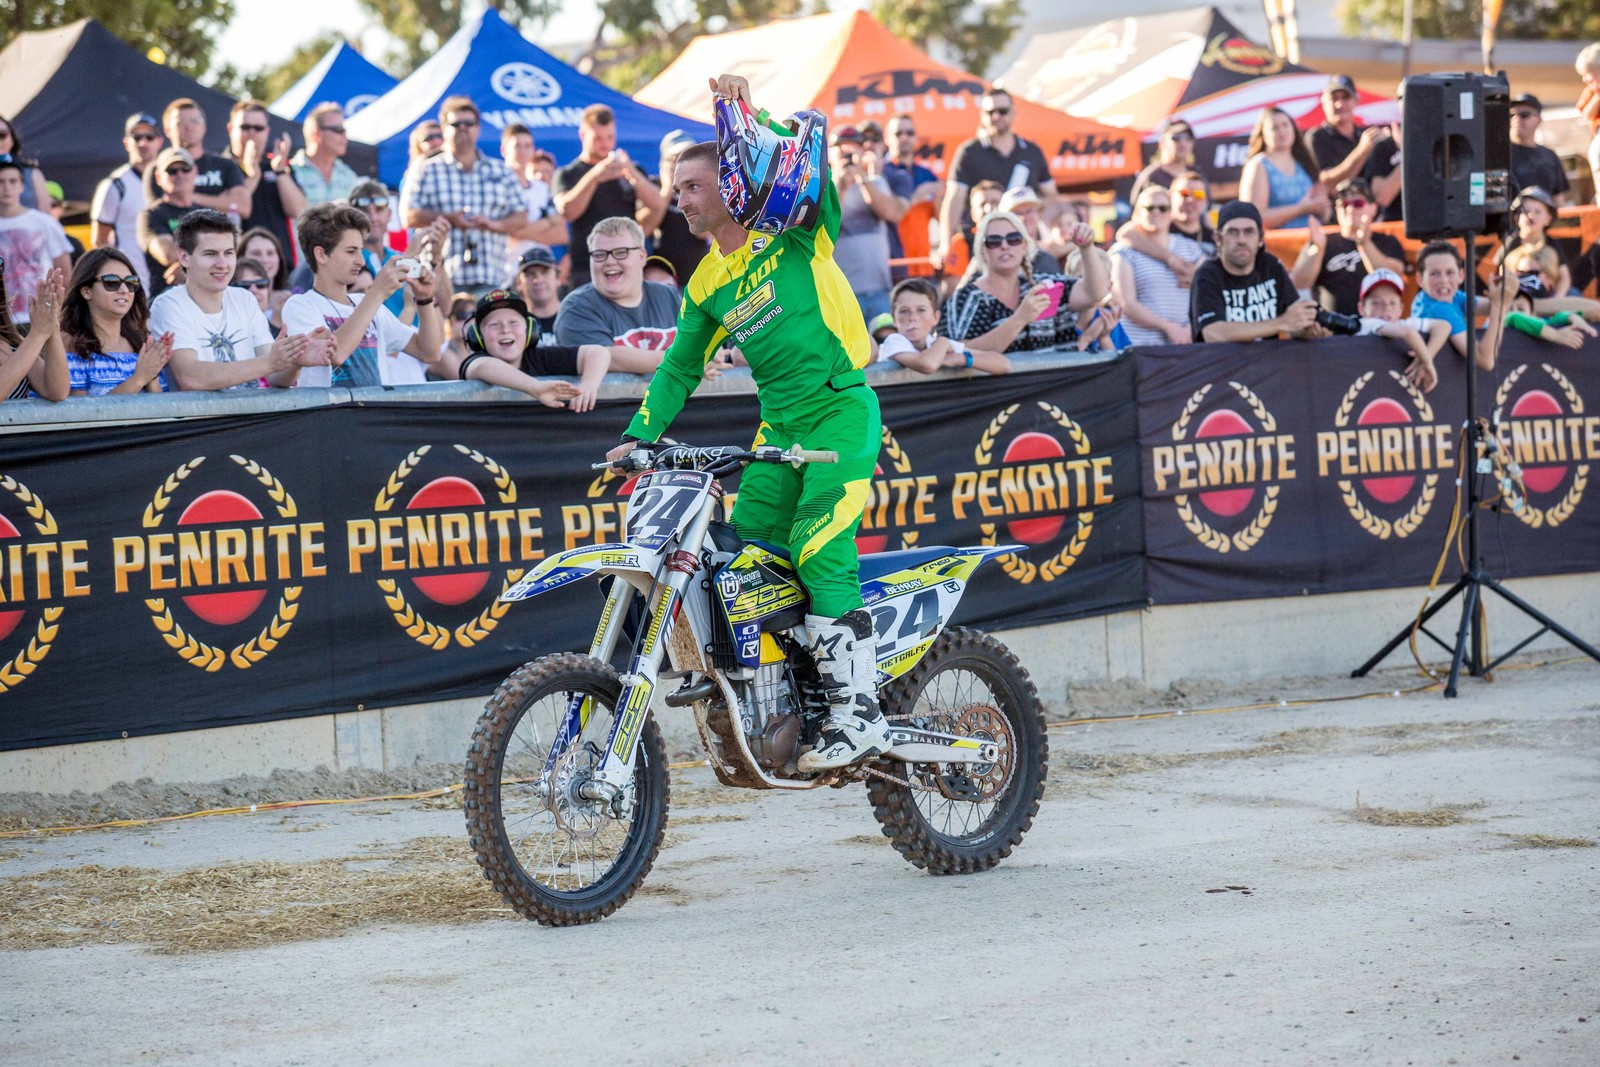 Brett Metcalfe - Photo Blast: Australian Supercross Championship from Adelaide - Motocross Pictures - Vital MX